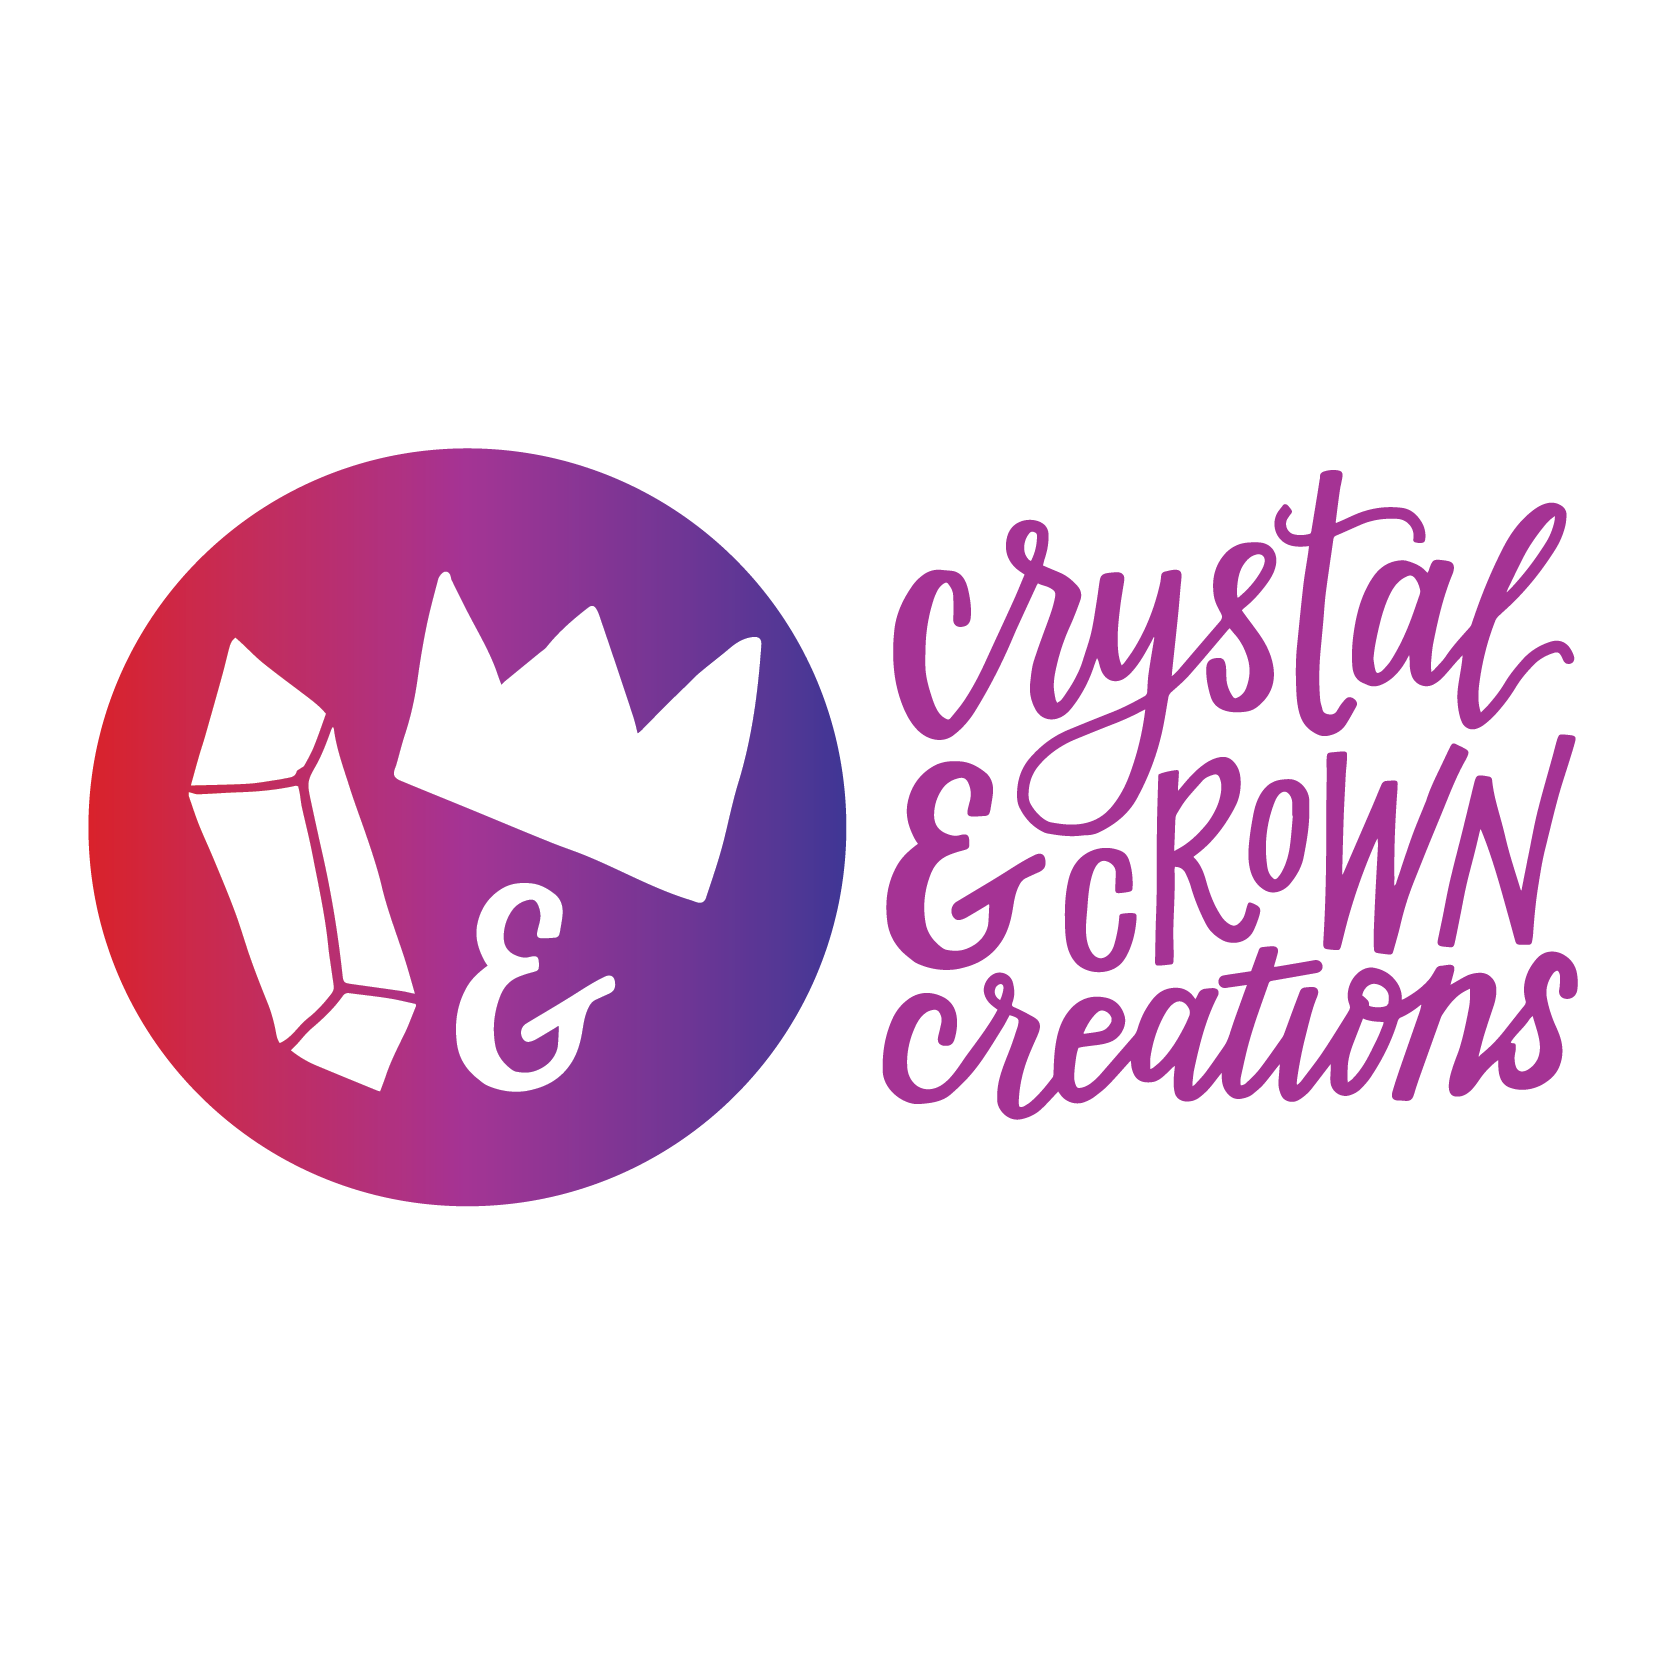 Crystal & Crown Creations Logo Design